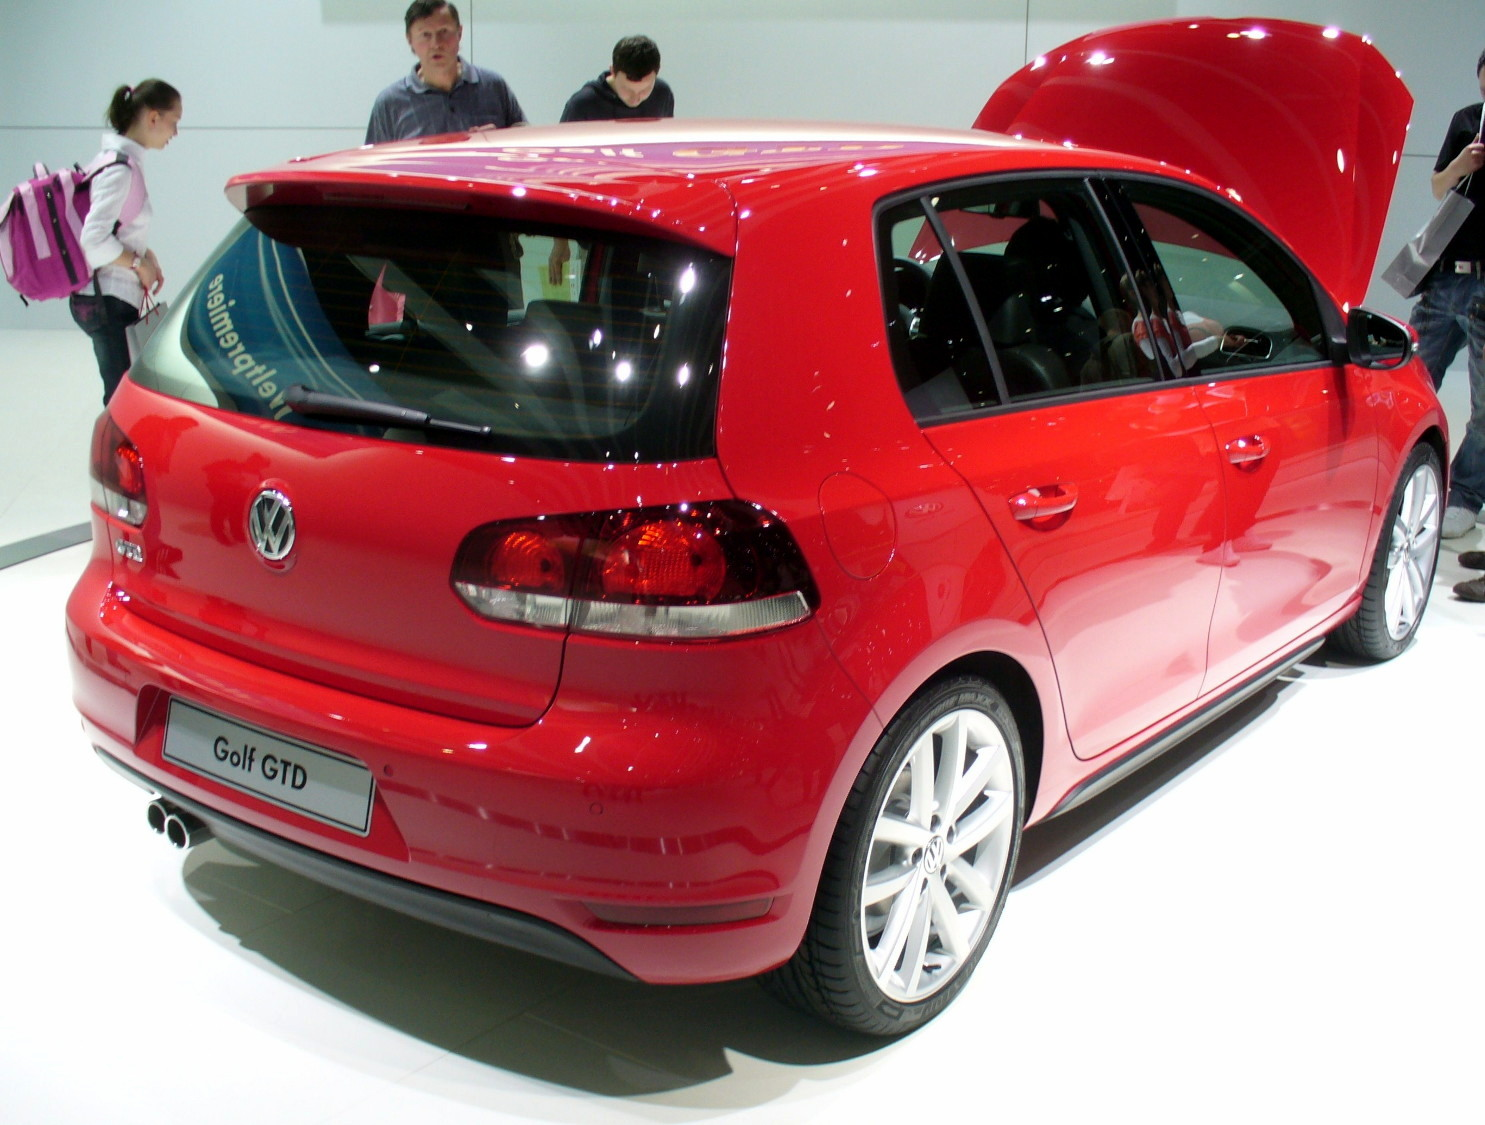 file vw golf v gtd heck jpg wikimedia commons. Black Bedroom Furniture Sets. Home Design Ideas